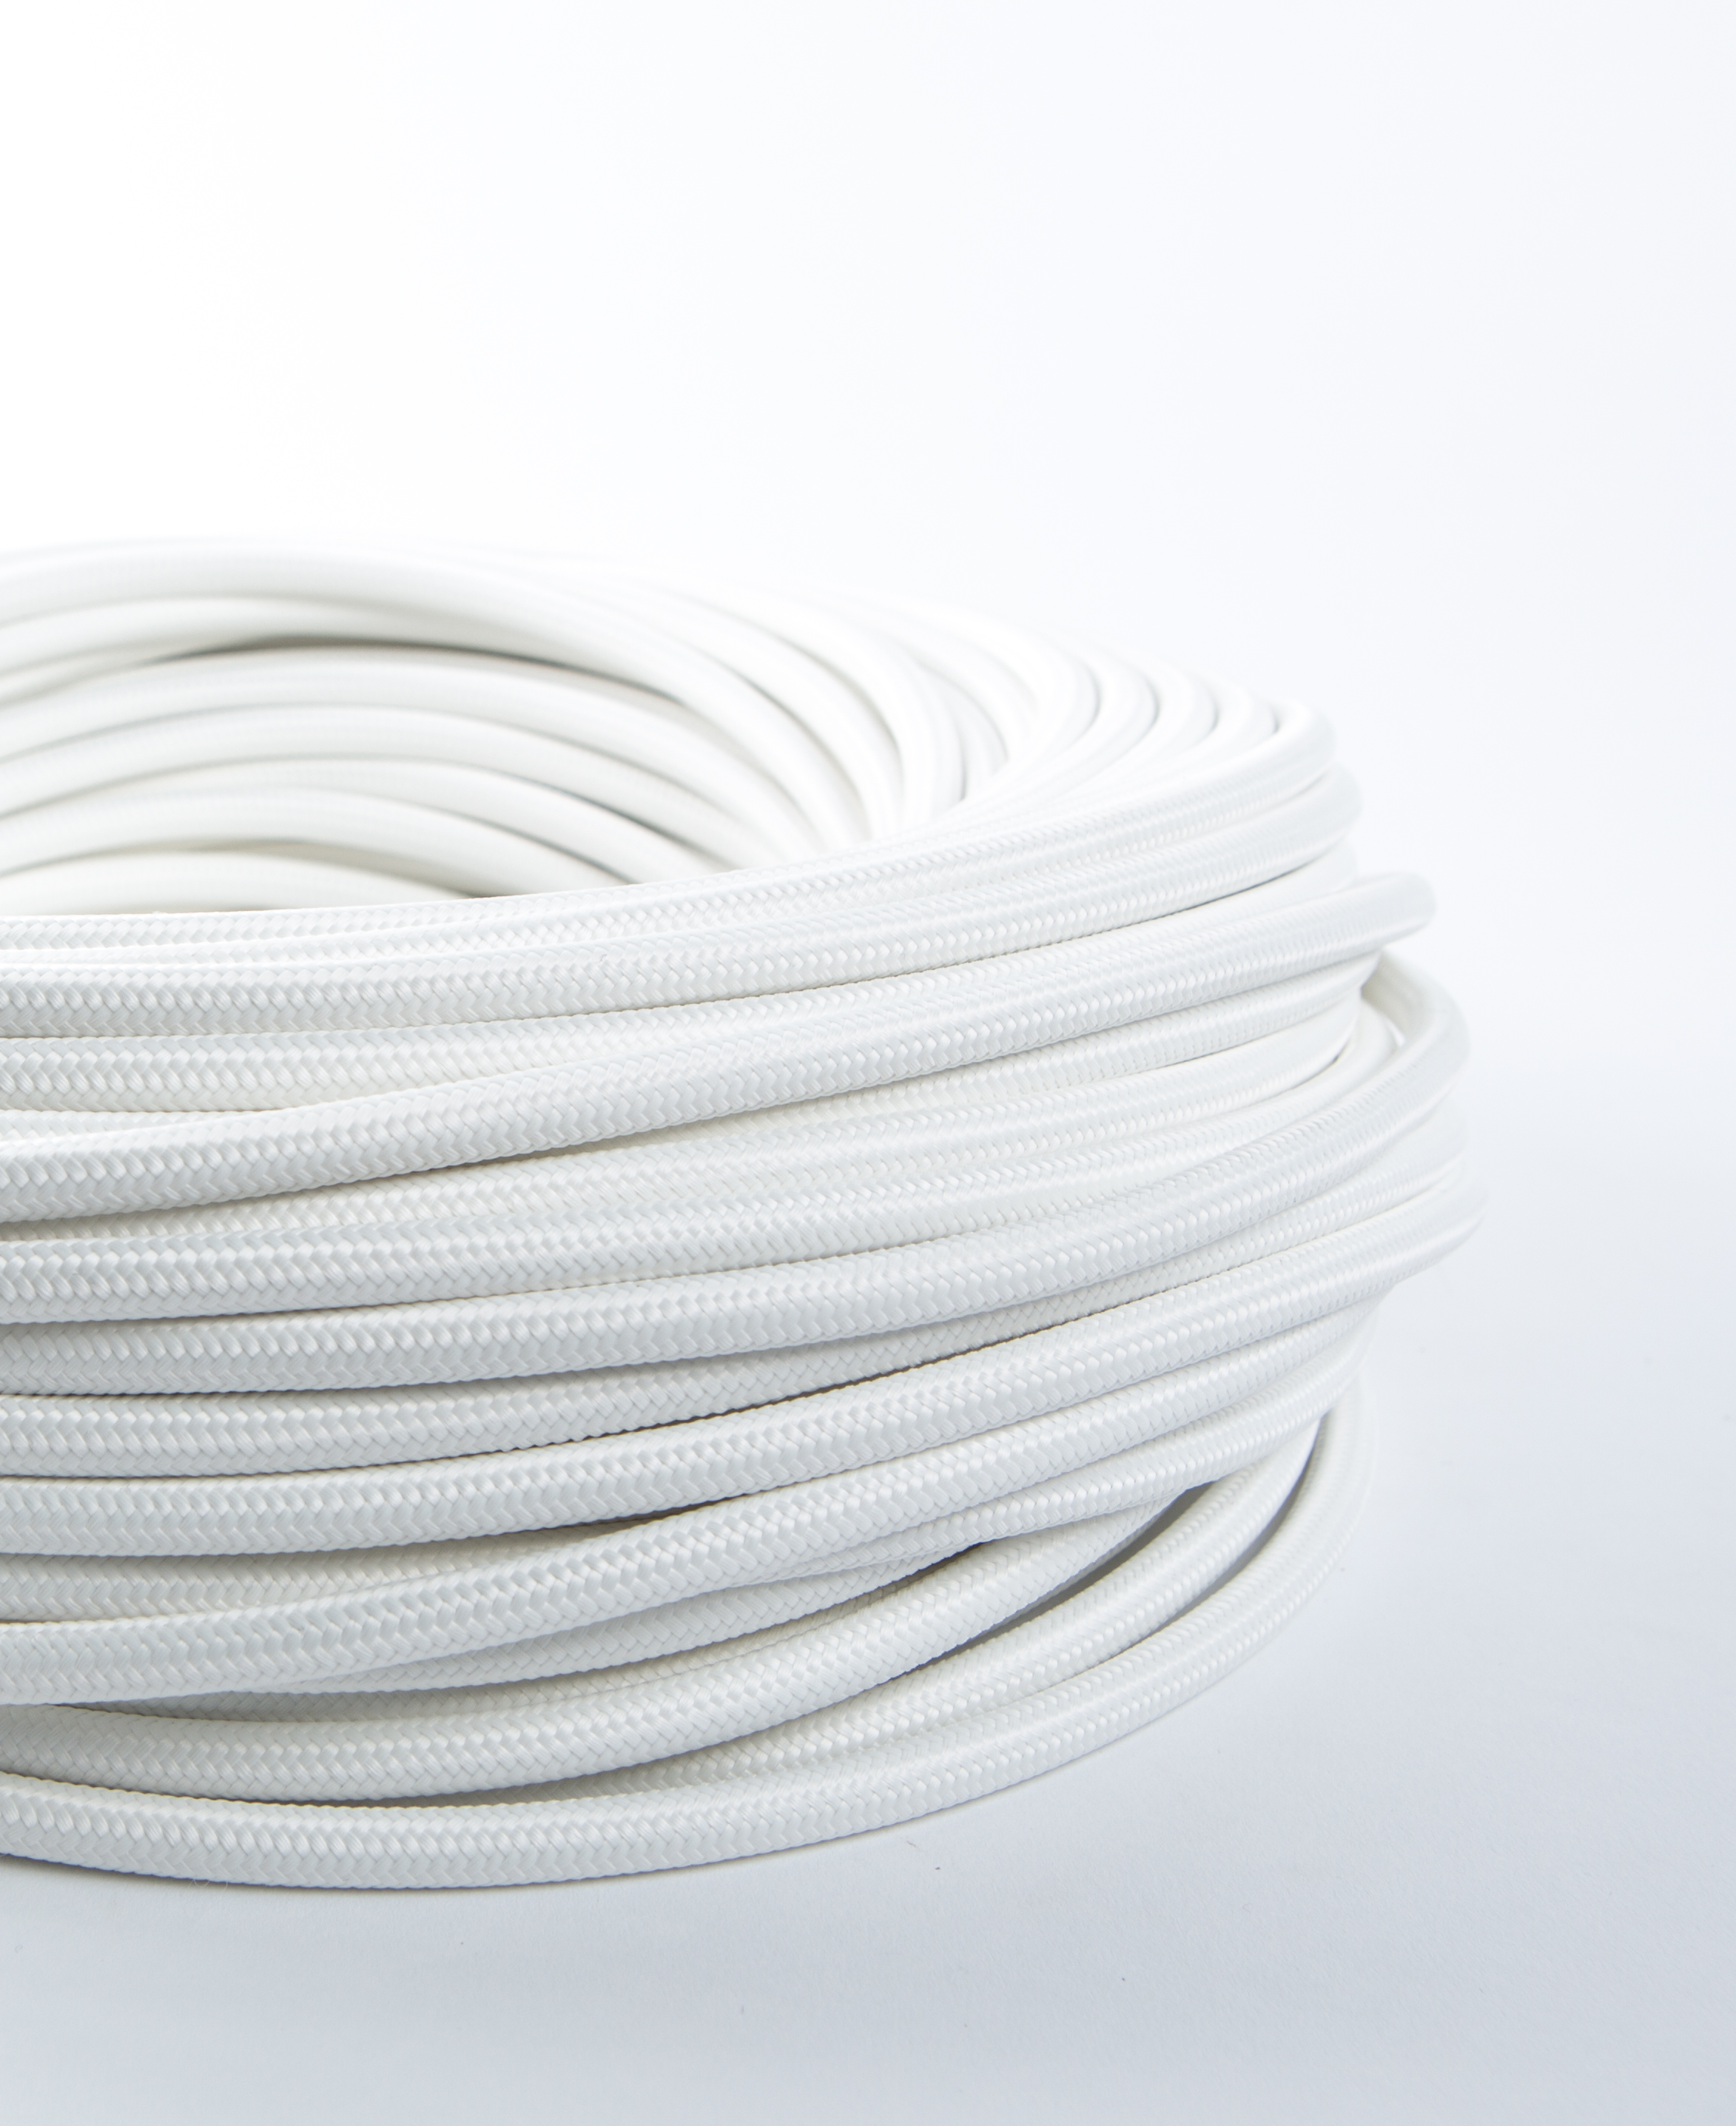 White Fabric Cable for Lighting 8 Amp 3 Core CE Certified